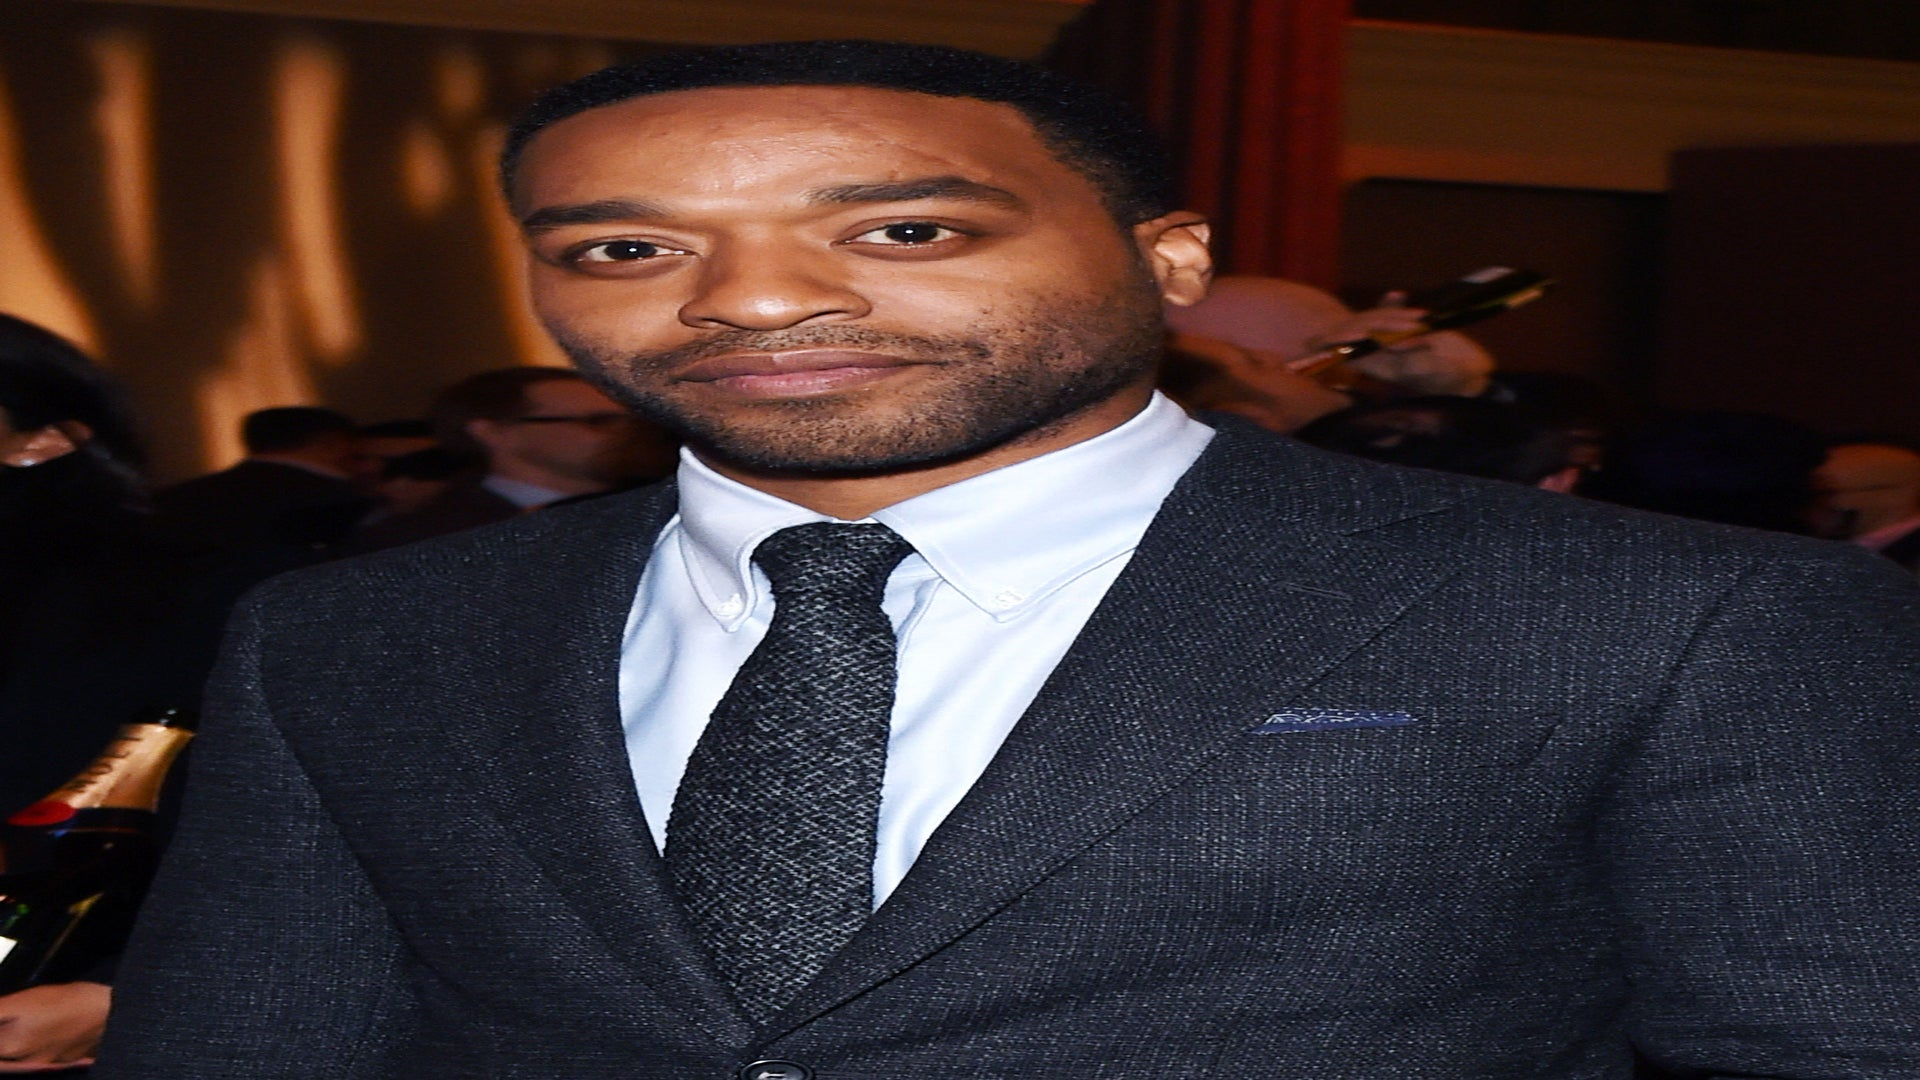 Dear Hollywood, Please Cast Chiwetel Ejiofor As Scar In 'The Lion King'